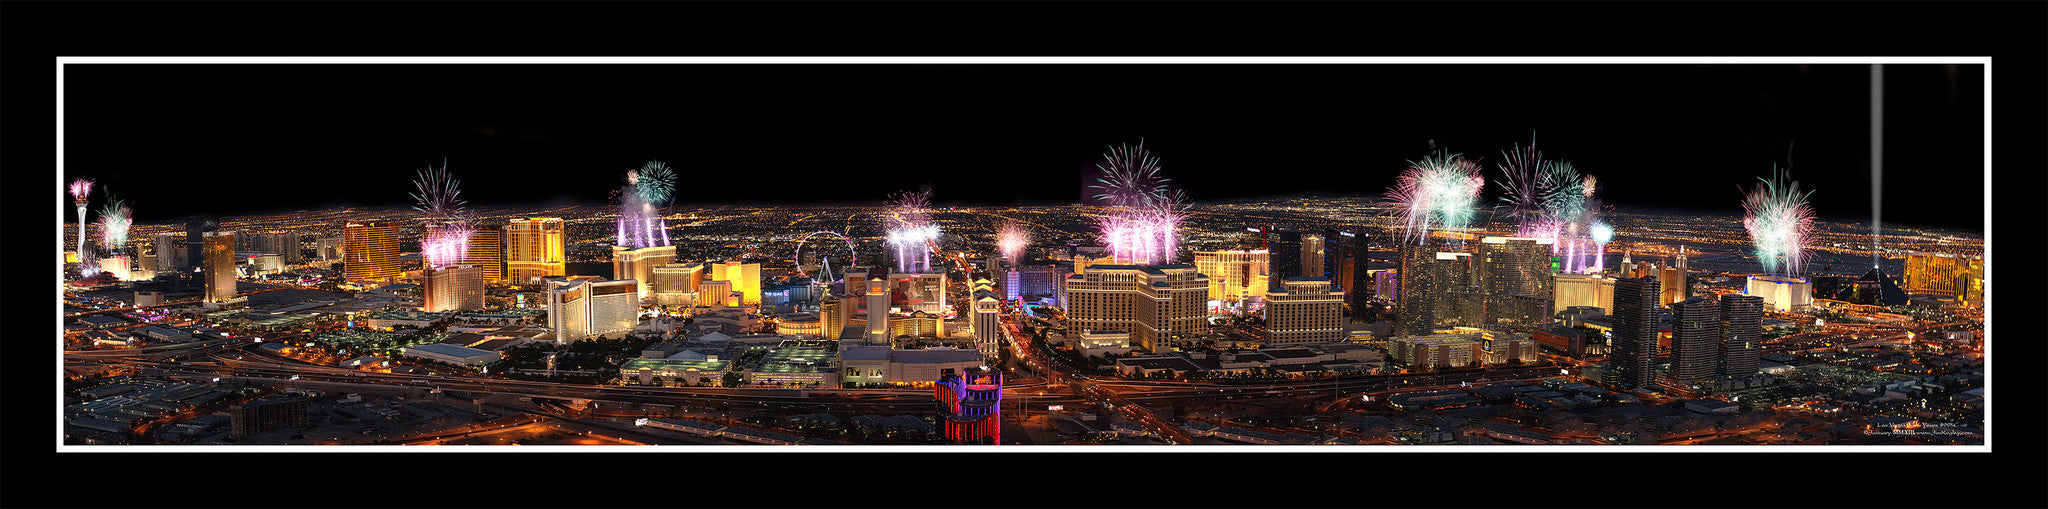 #995 Vegas New Years